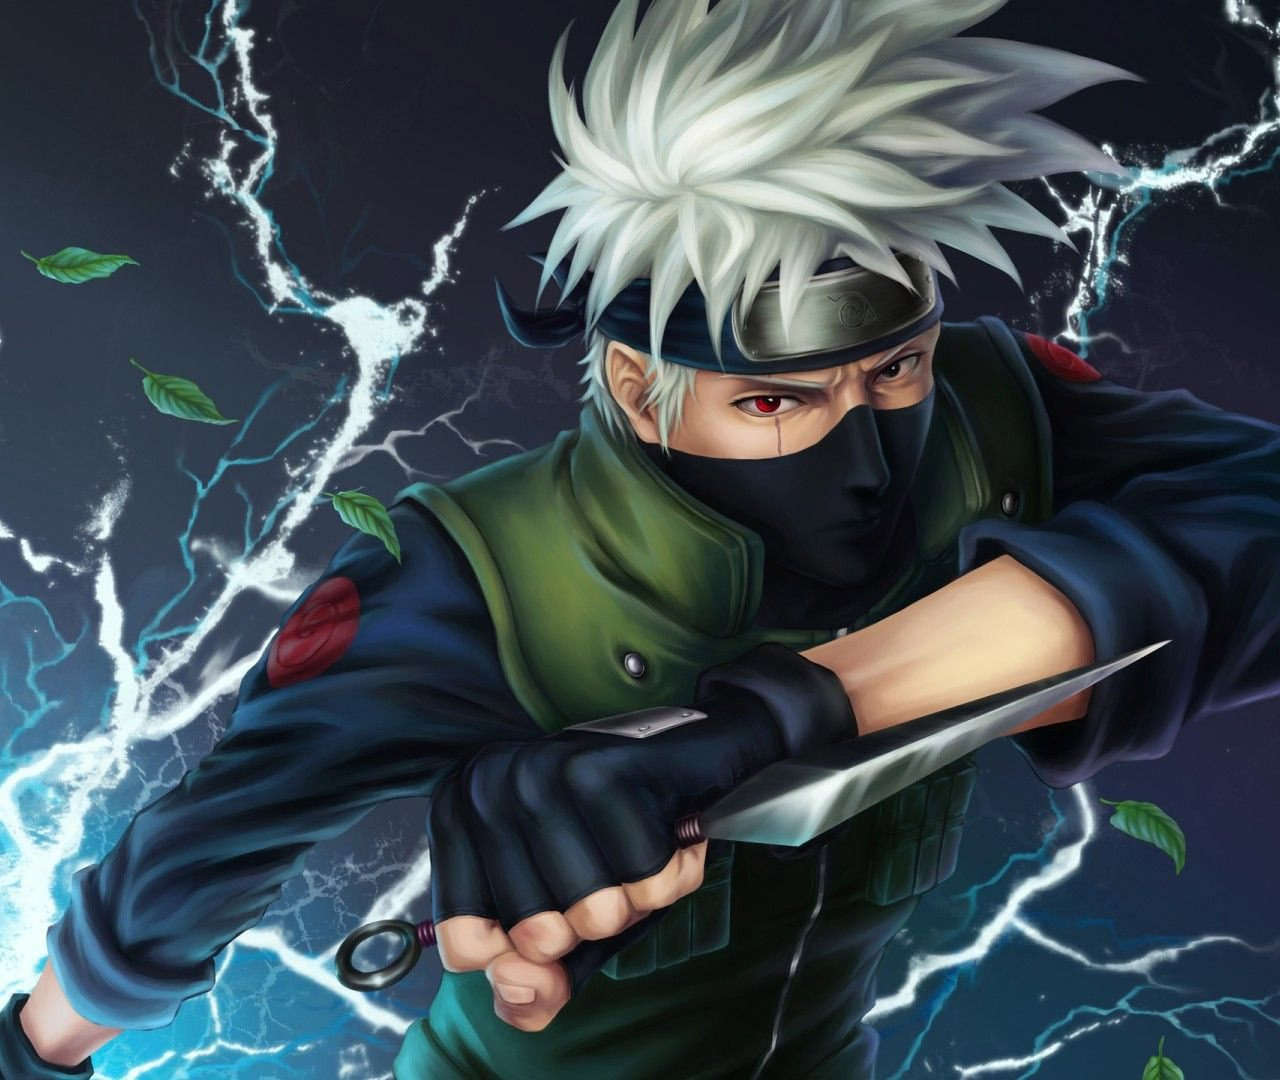 Kakashi Wallpaper Iphone Kakashi Hatake Naruto Wallpaper Hd Wallpapers Hd